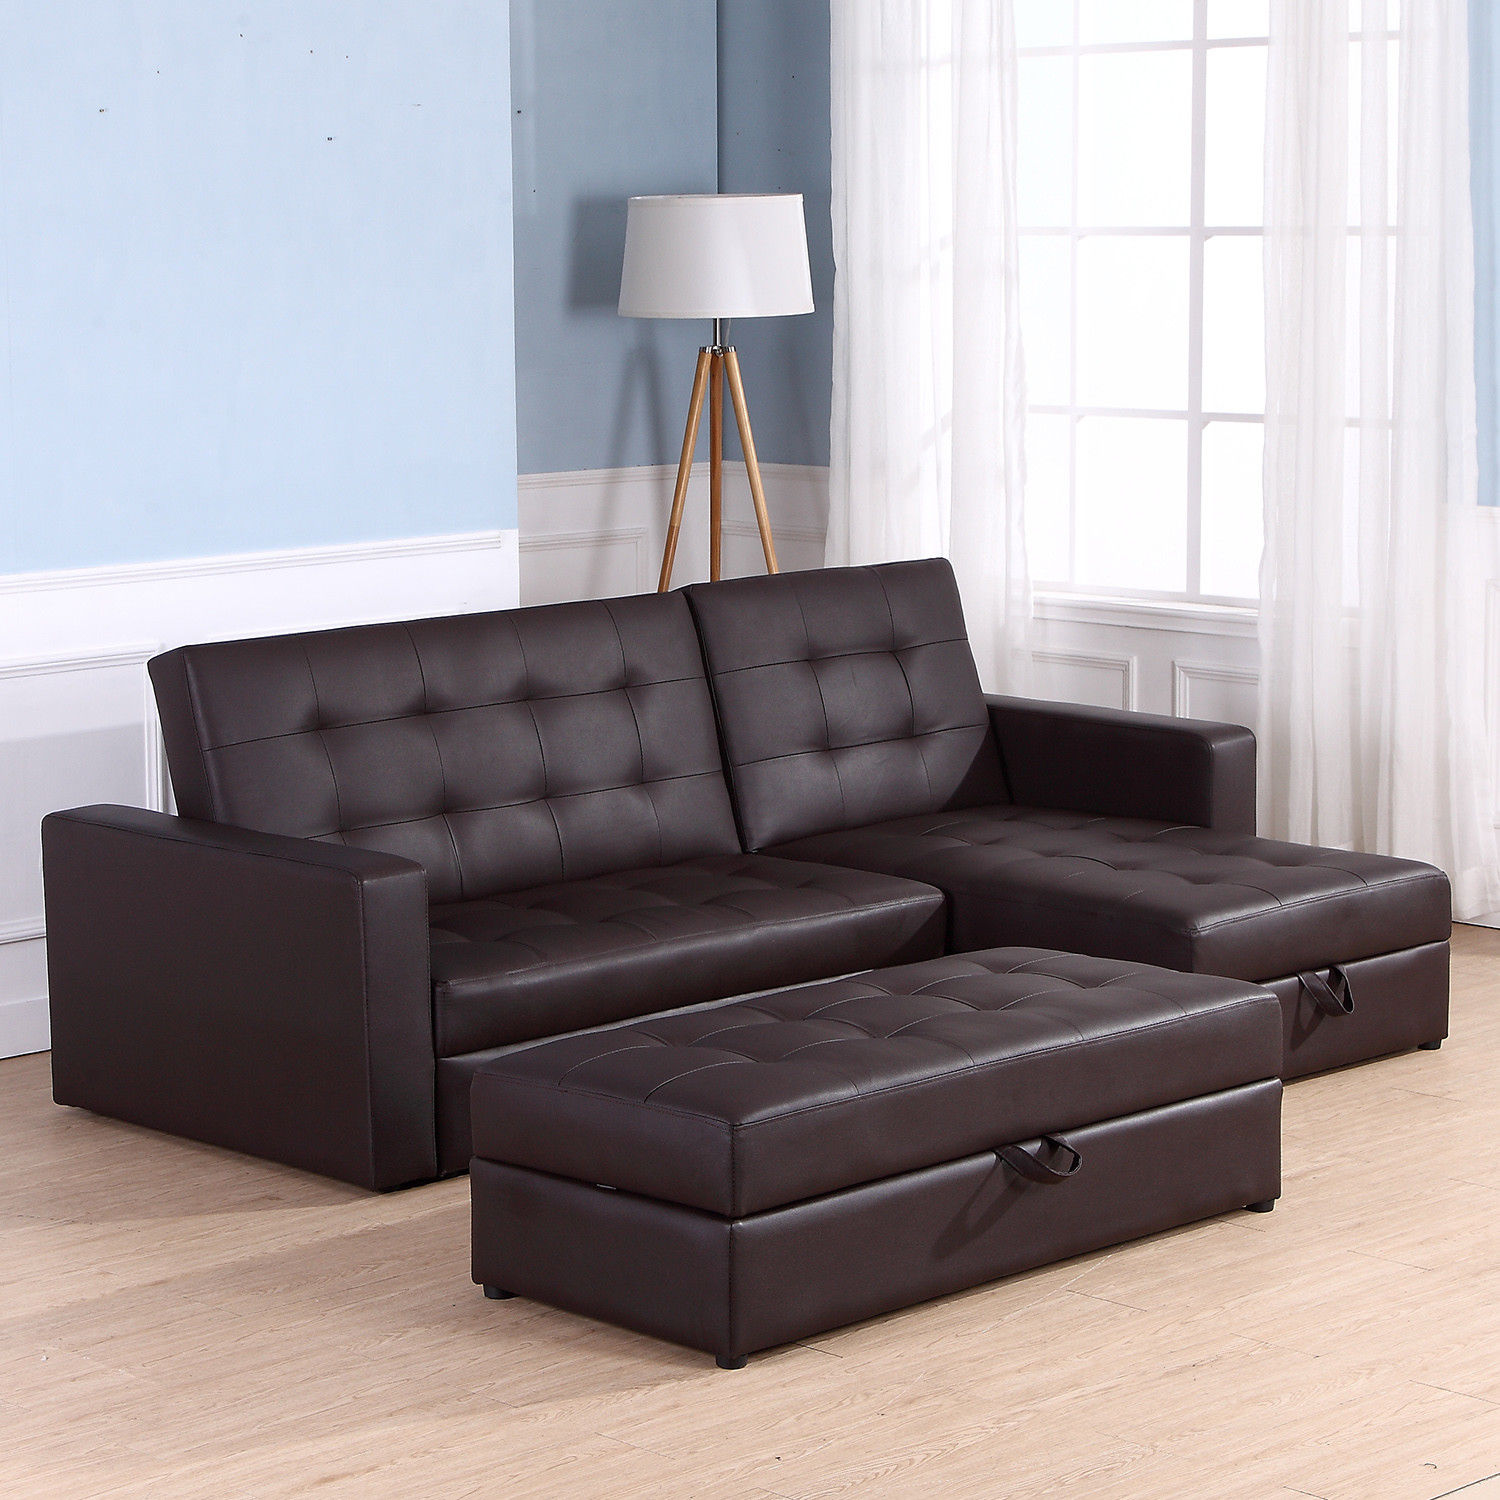 Sofa Bed Storage Sleeper Chaise Loveseat Couch Sectional ...